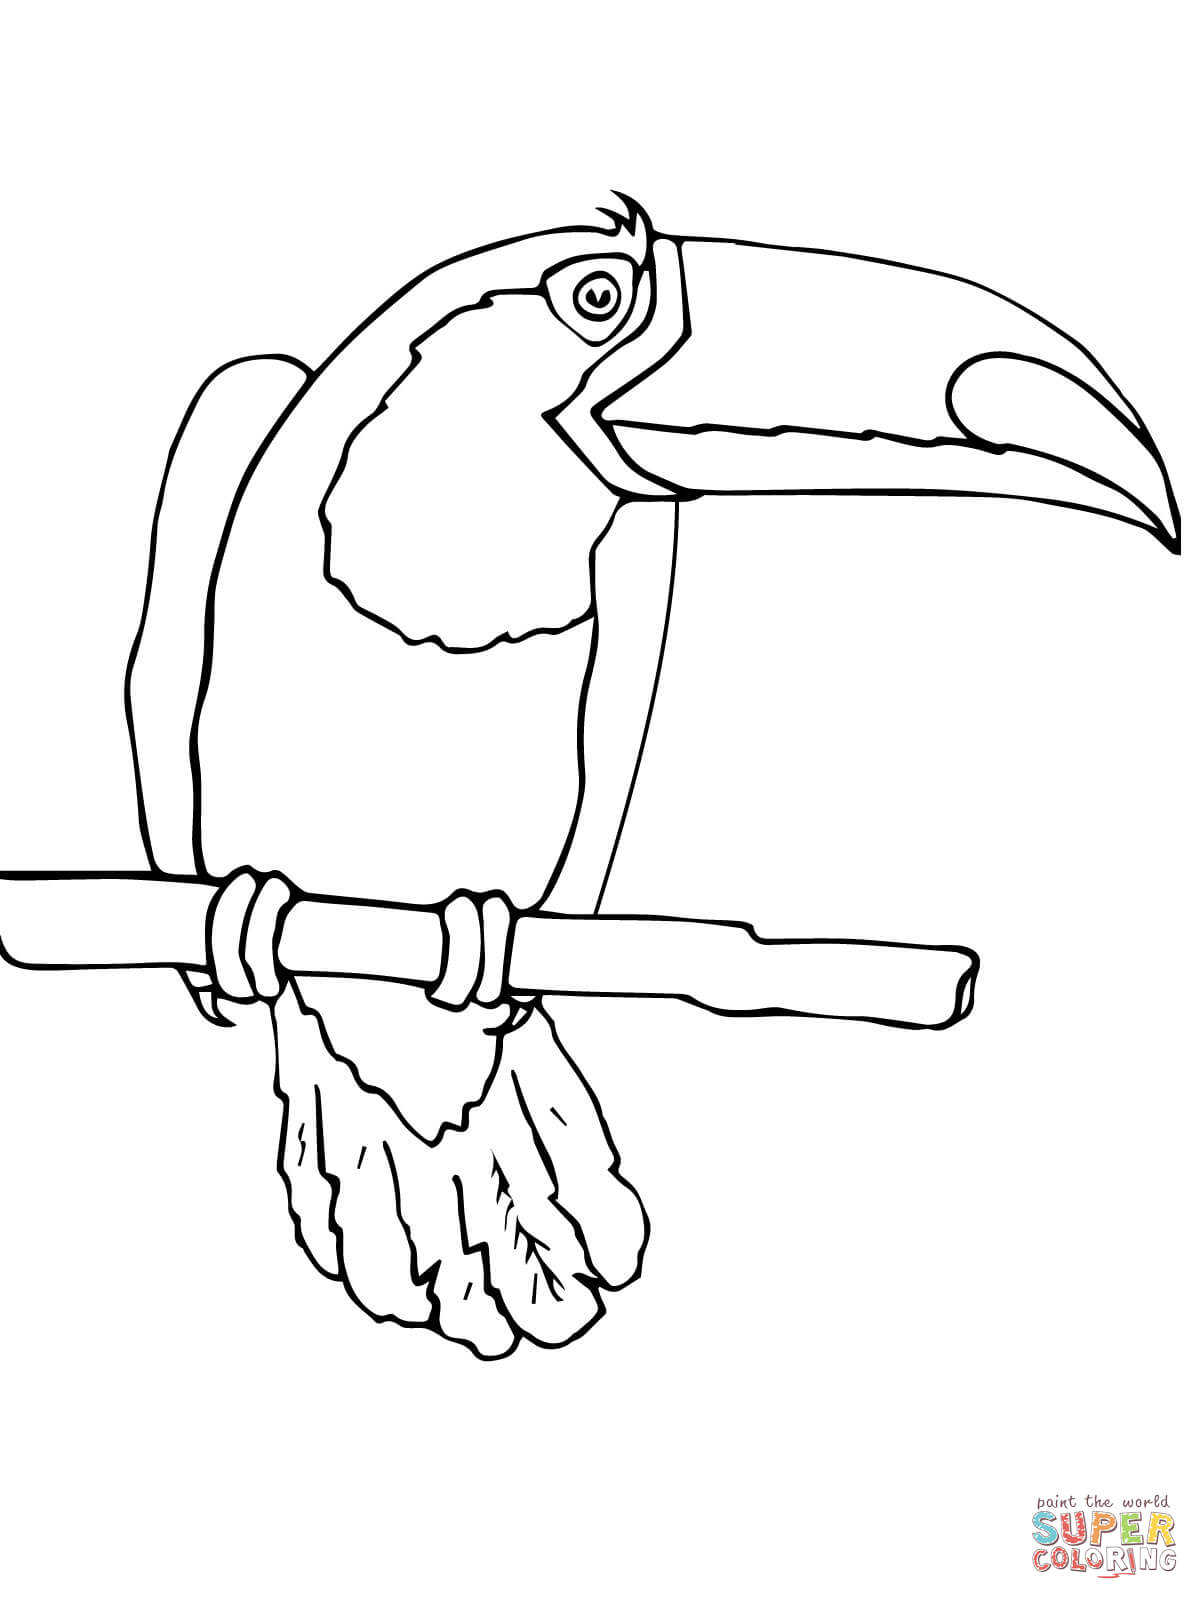 Keel-billed Toucan coloring #15, Download drawings